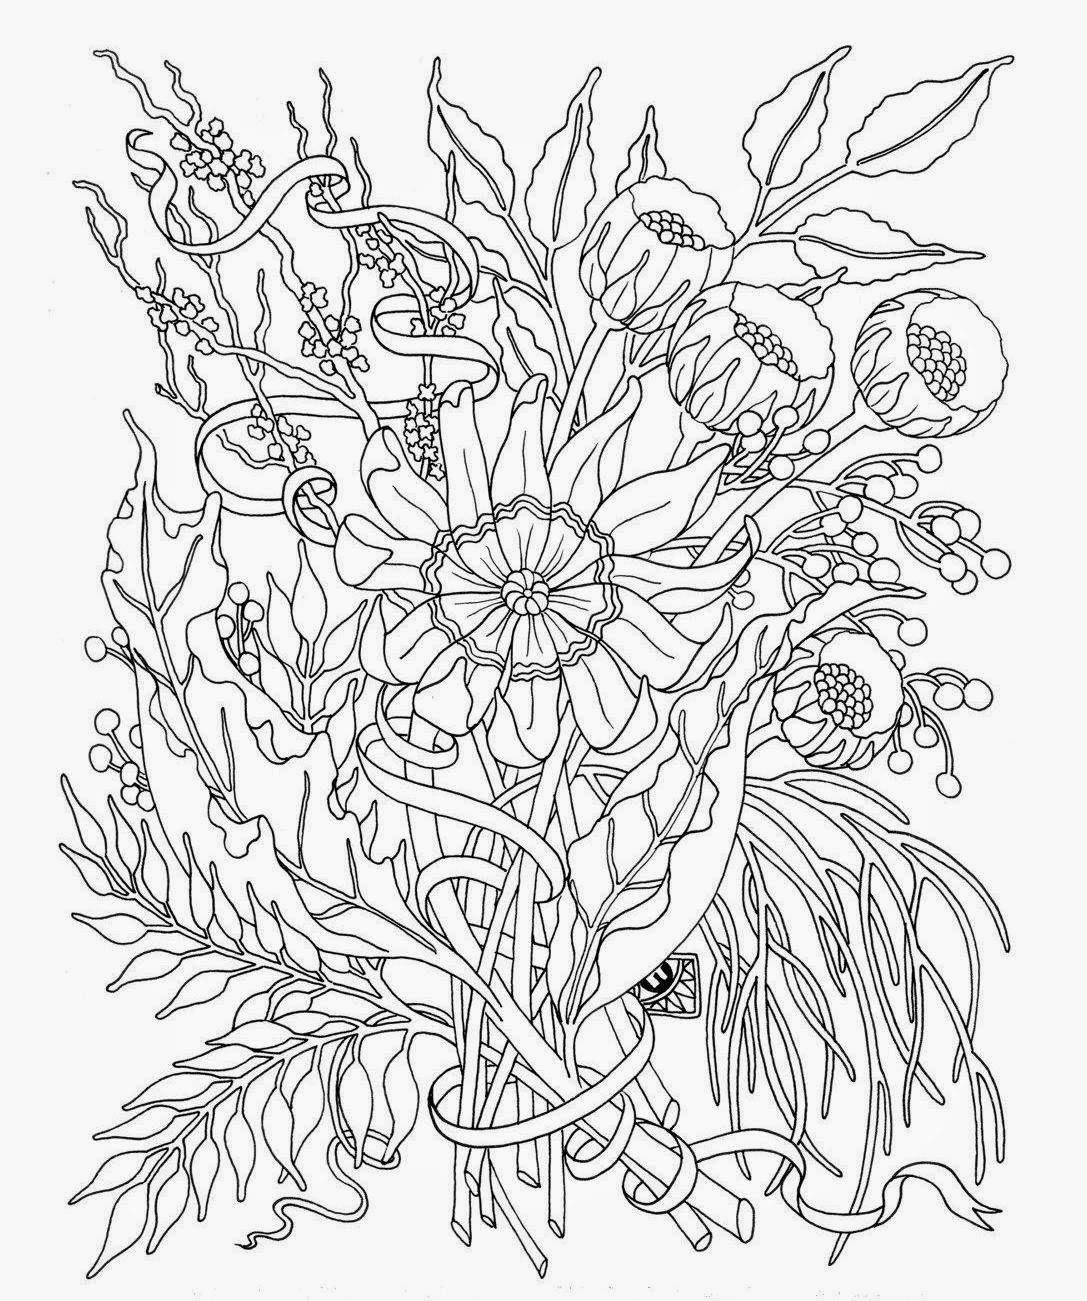 tween coloring pages coloring pages for tween girls anak coloring tween pages